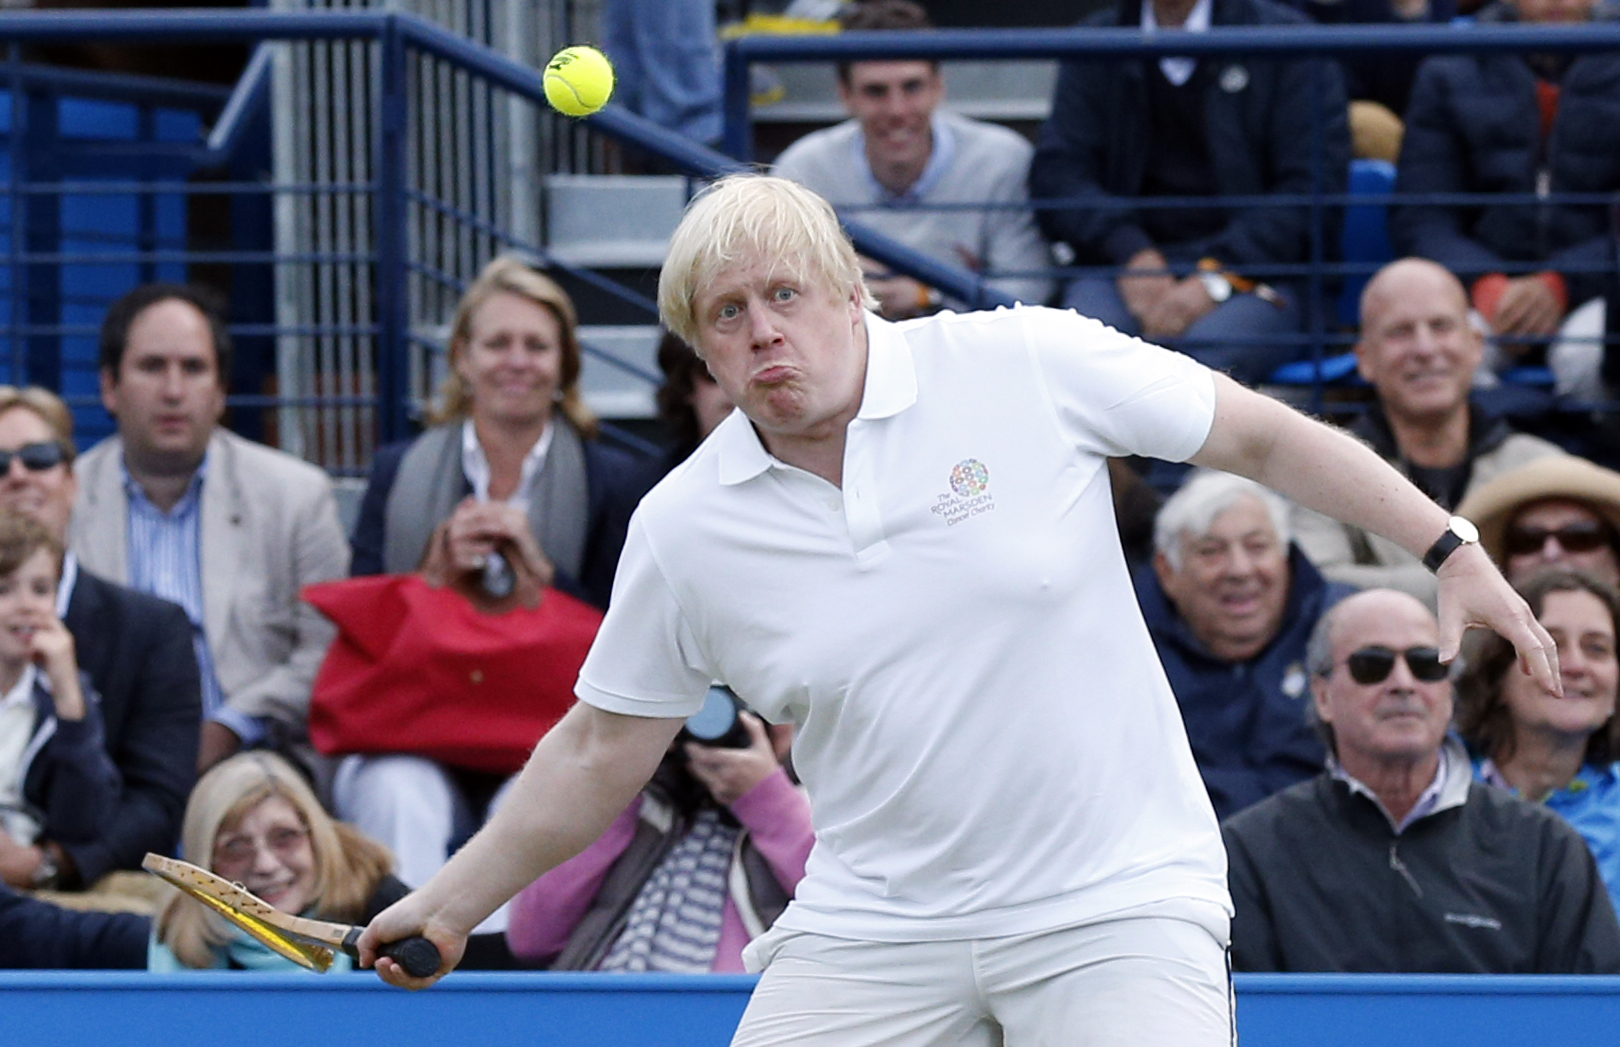 Boris Johnson (centre) takes part in a celebrity tennis match in aid of the Royal Marsden Hospital at The Queen's Club, London.